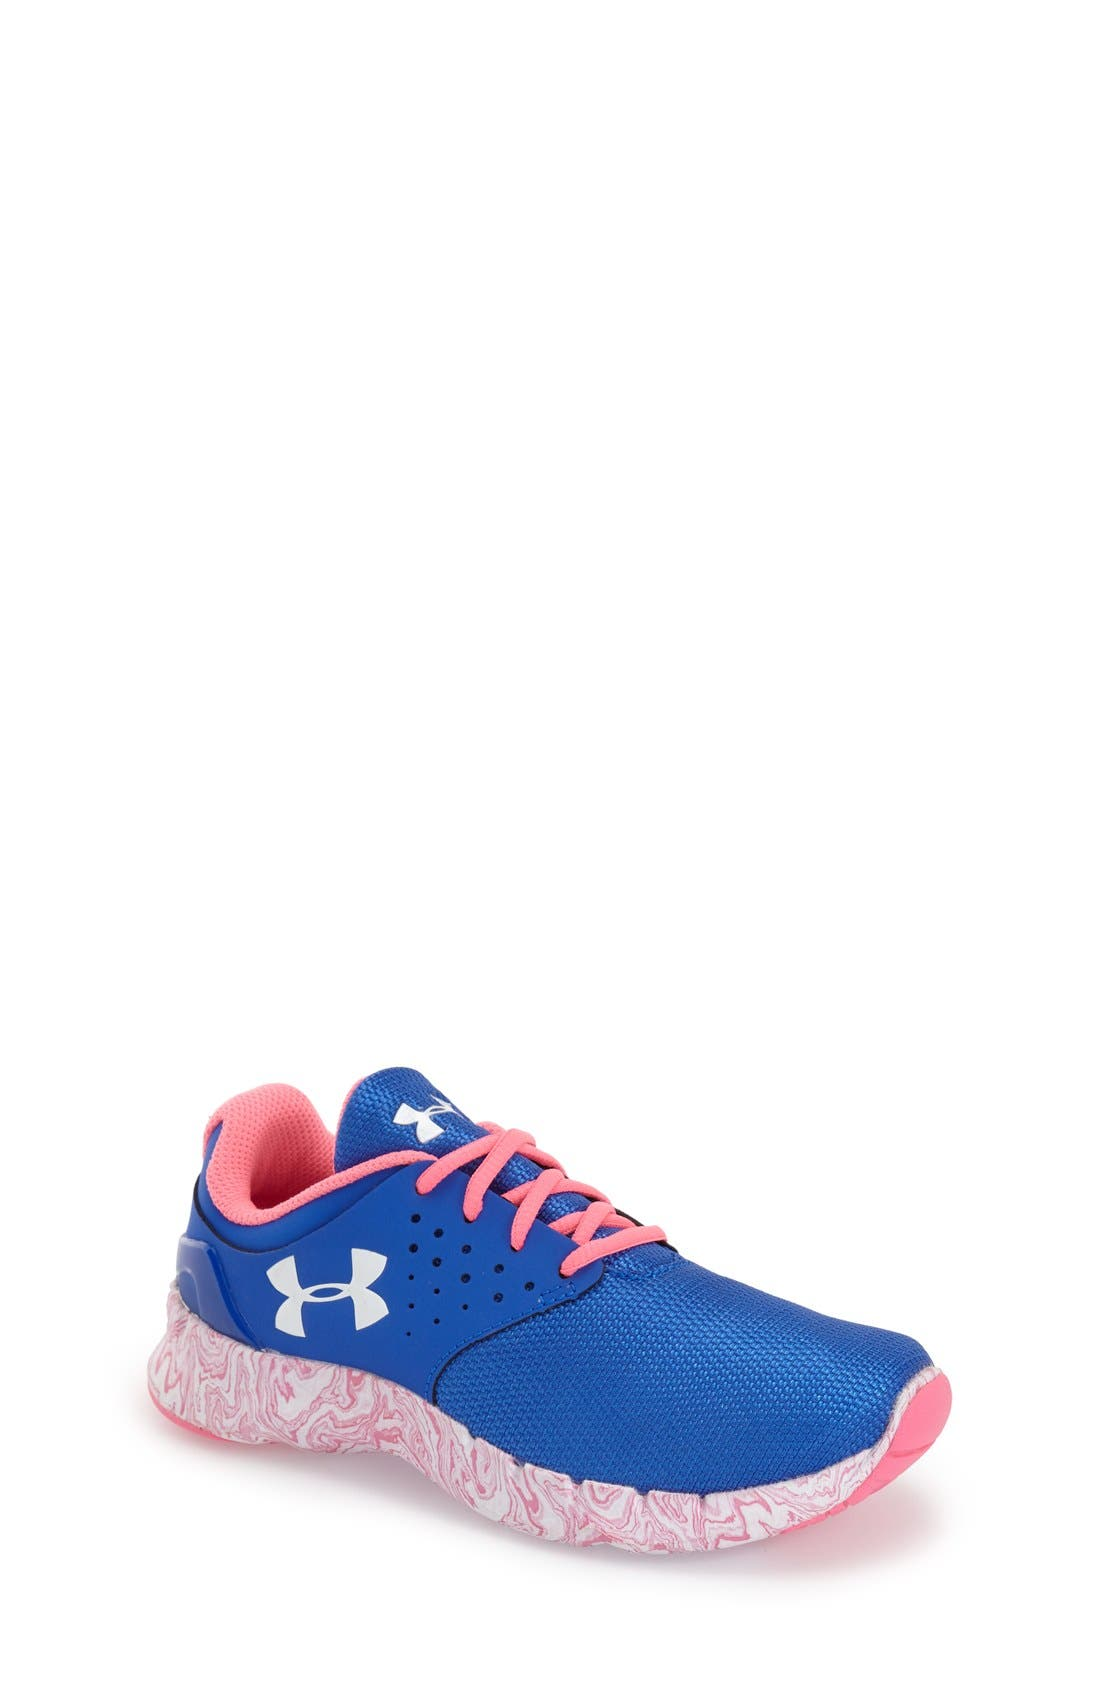 Under Armour Flow Swirl Athletic Shoe Toddler